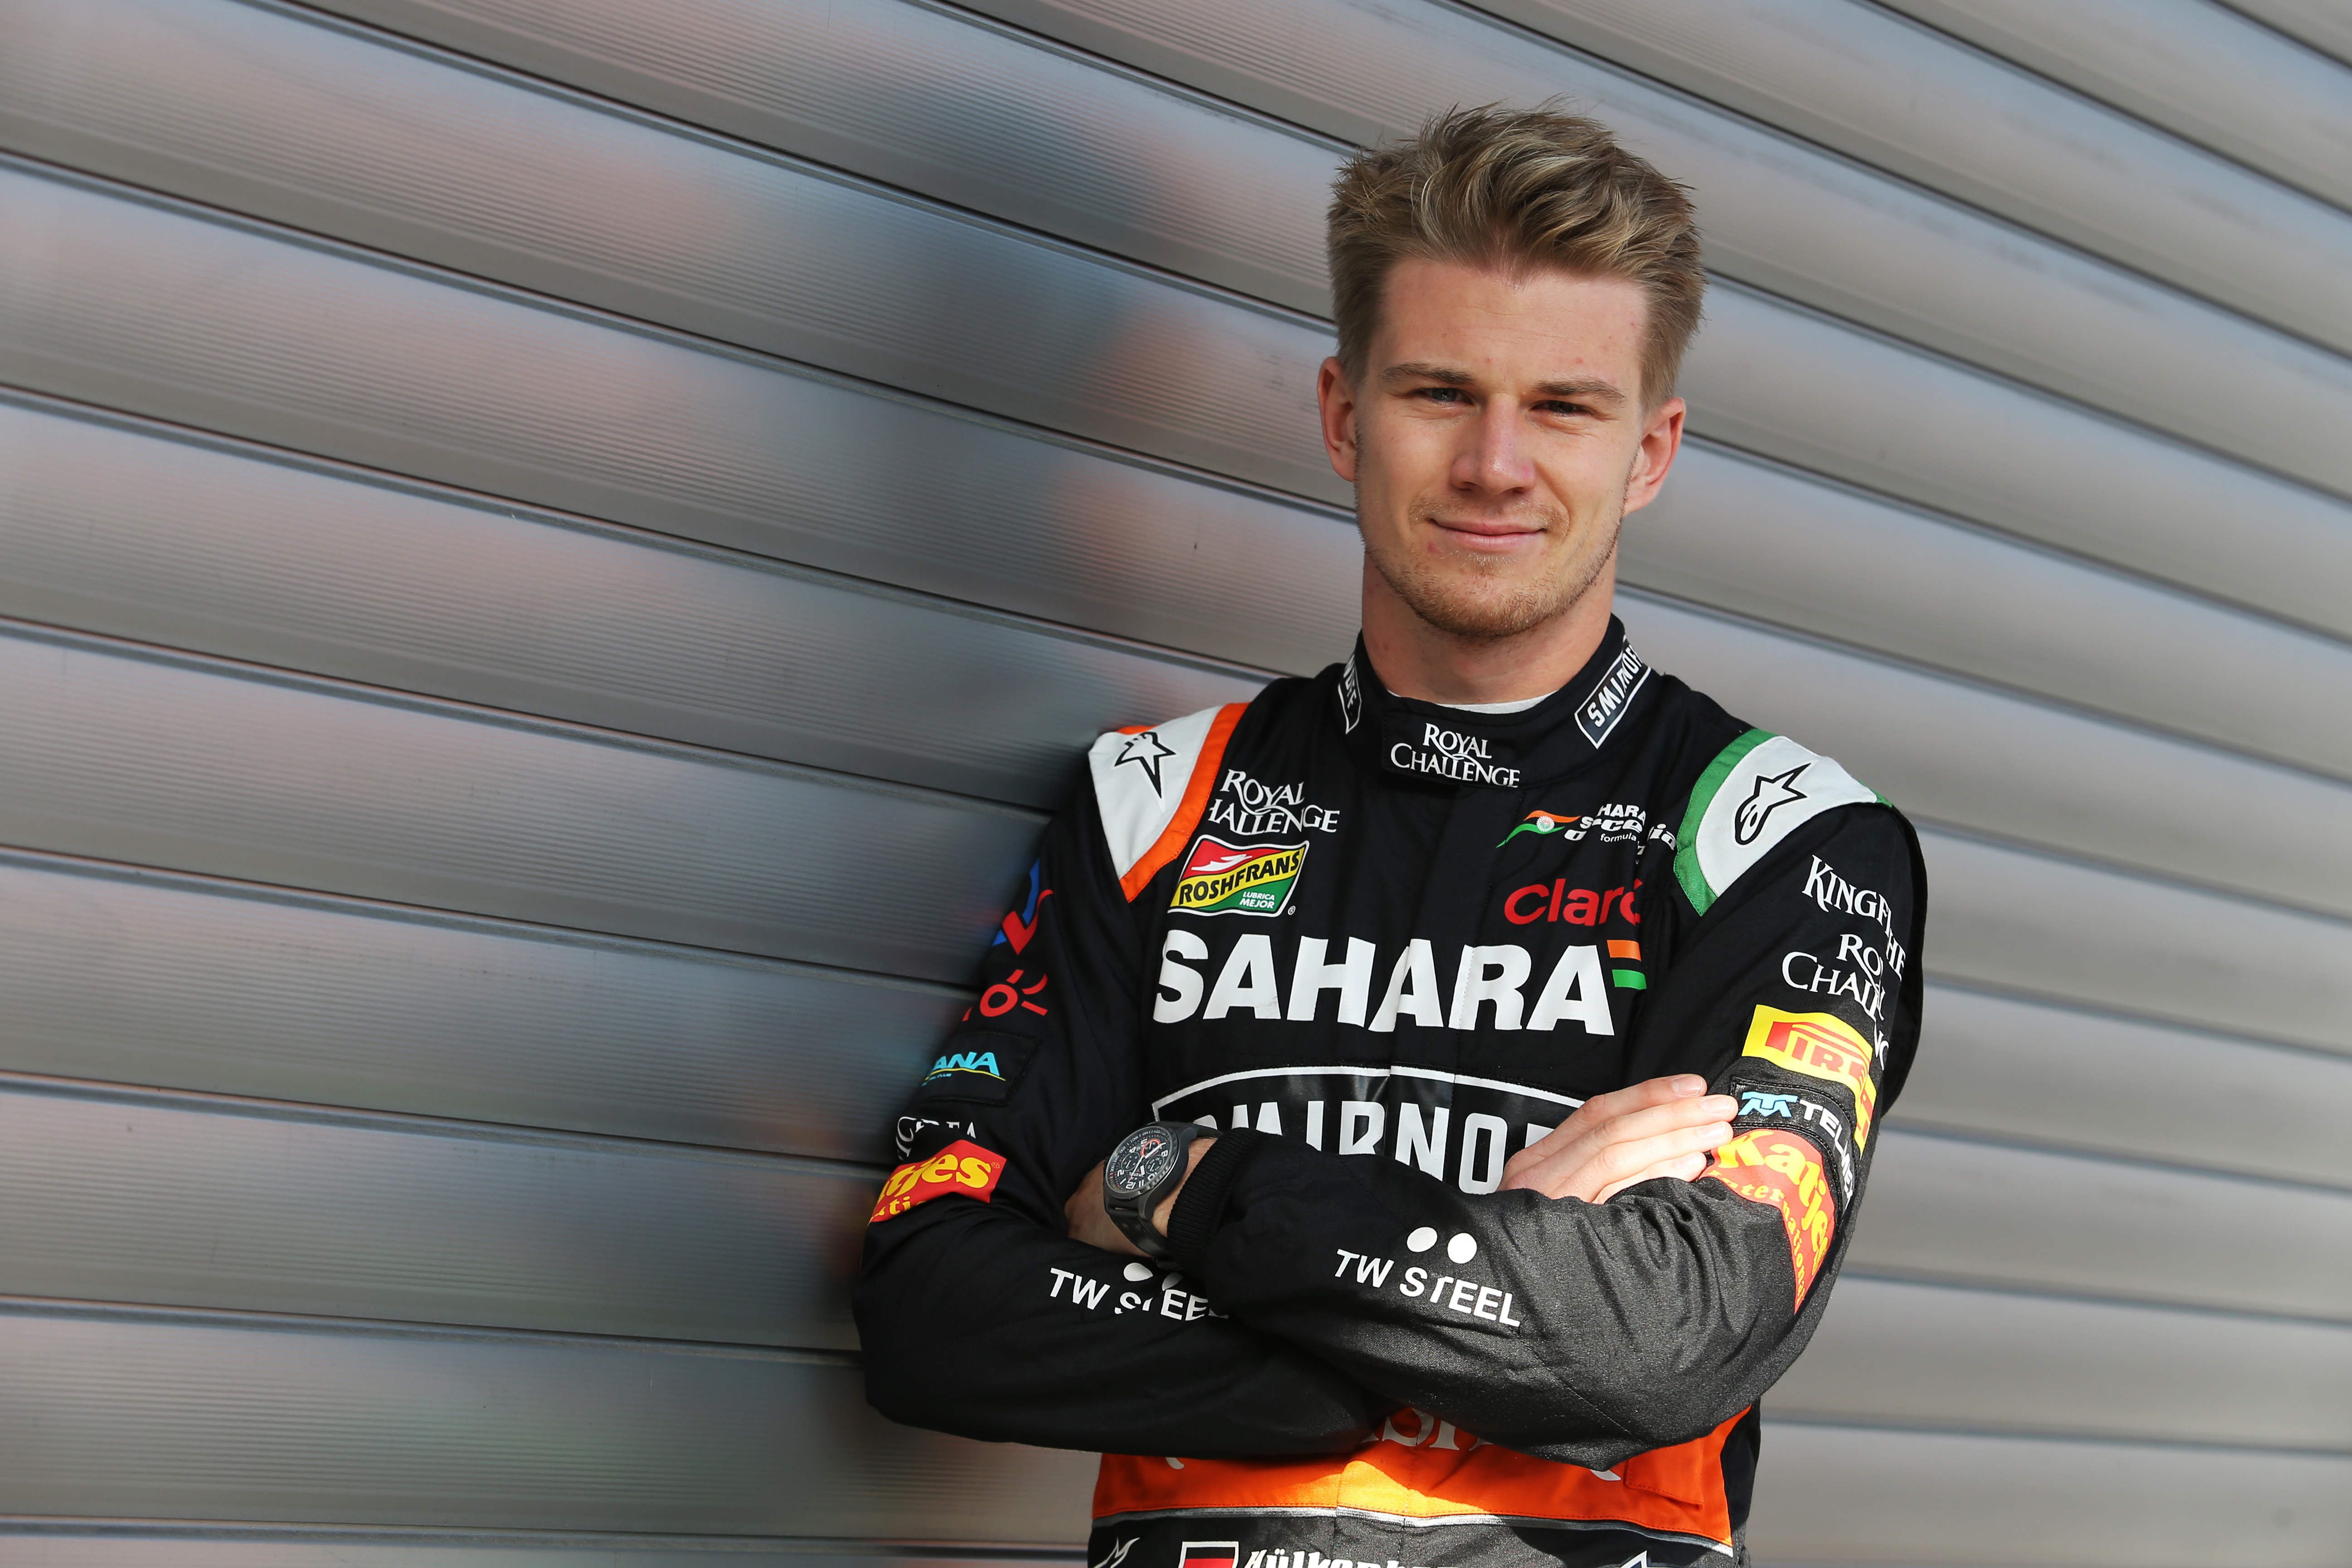 Nico Hulkenberg will drive for the Renault F1 team from 2017.